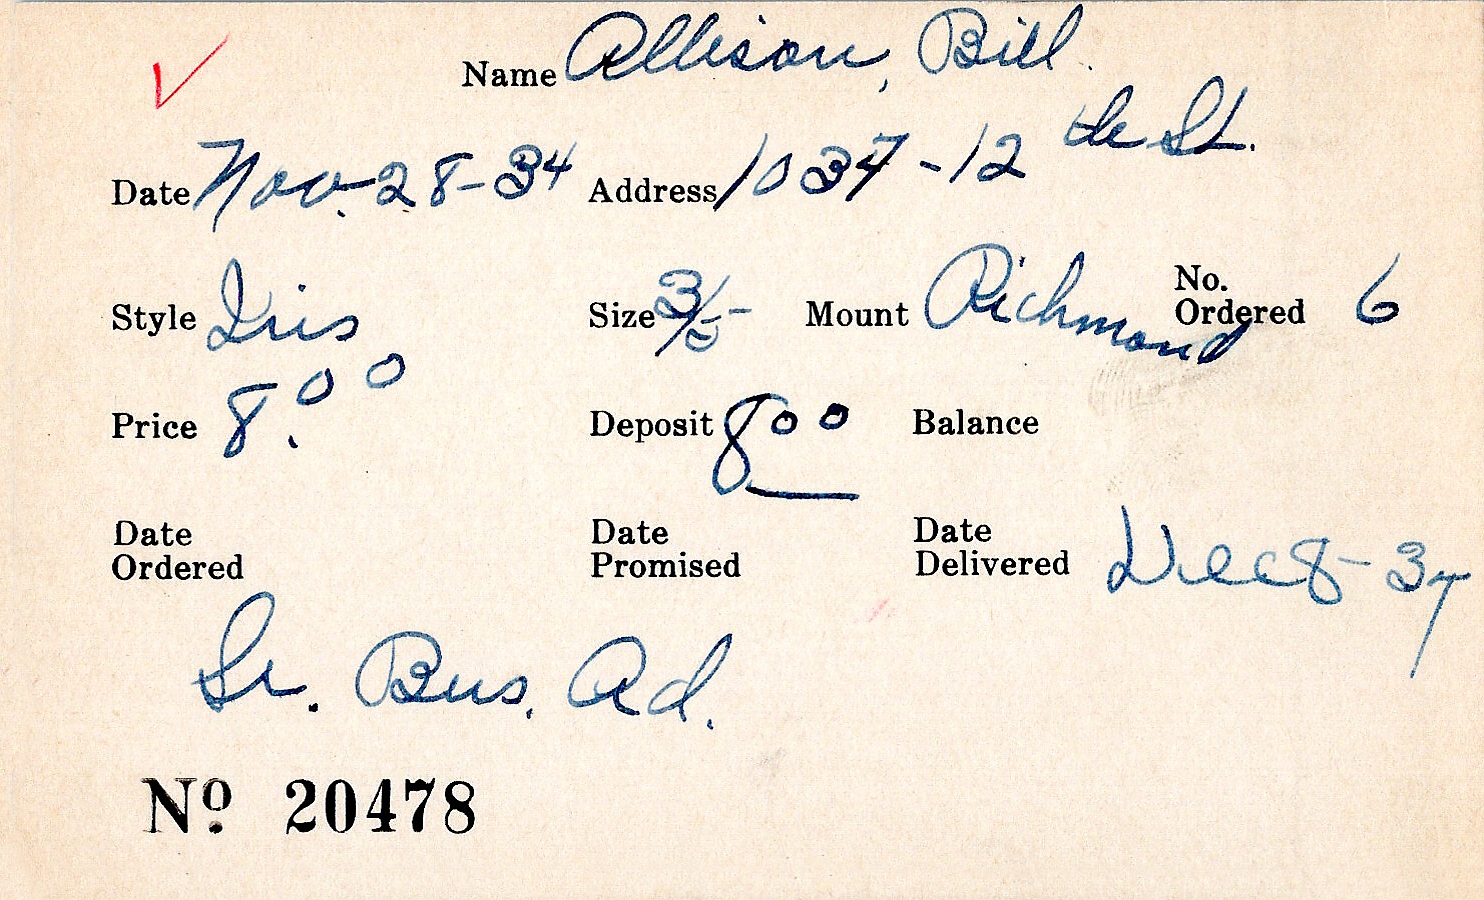 Index card for Bill Allison